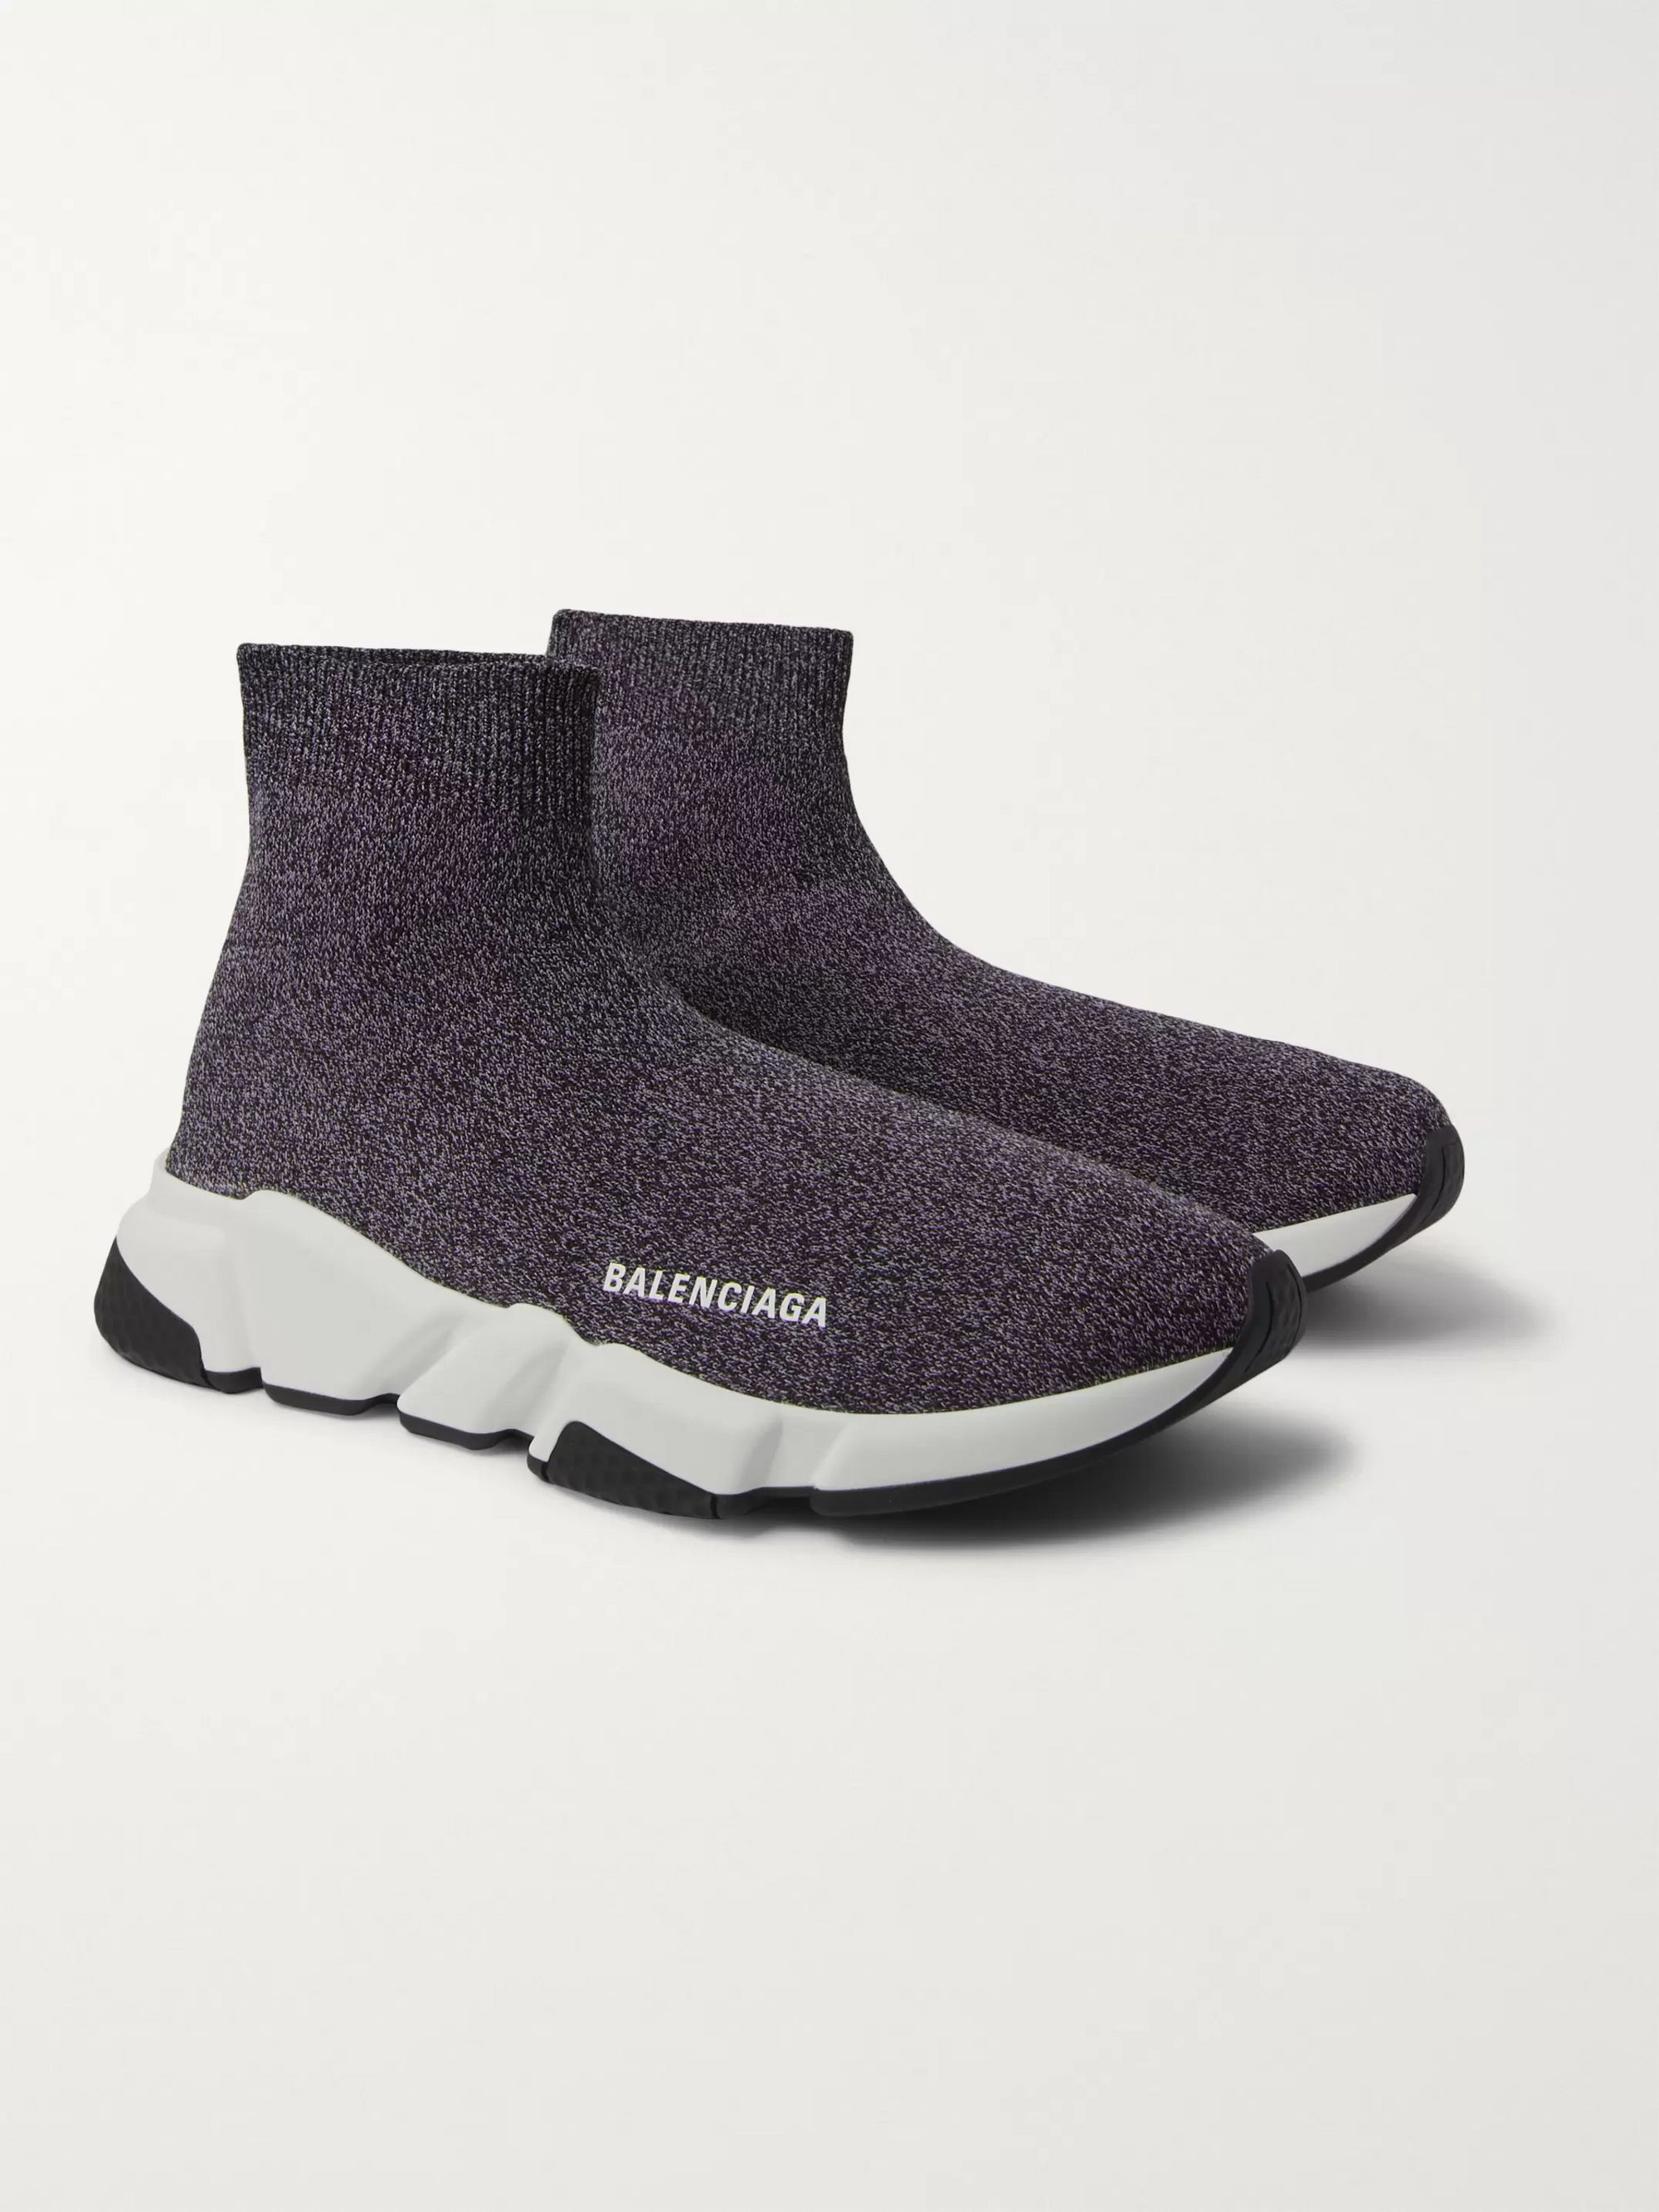 Gray Speed Sock Stretch-Knit Slip-On Sneakers | Balenciaga | MR PORTER